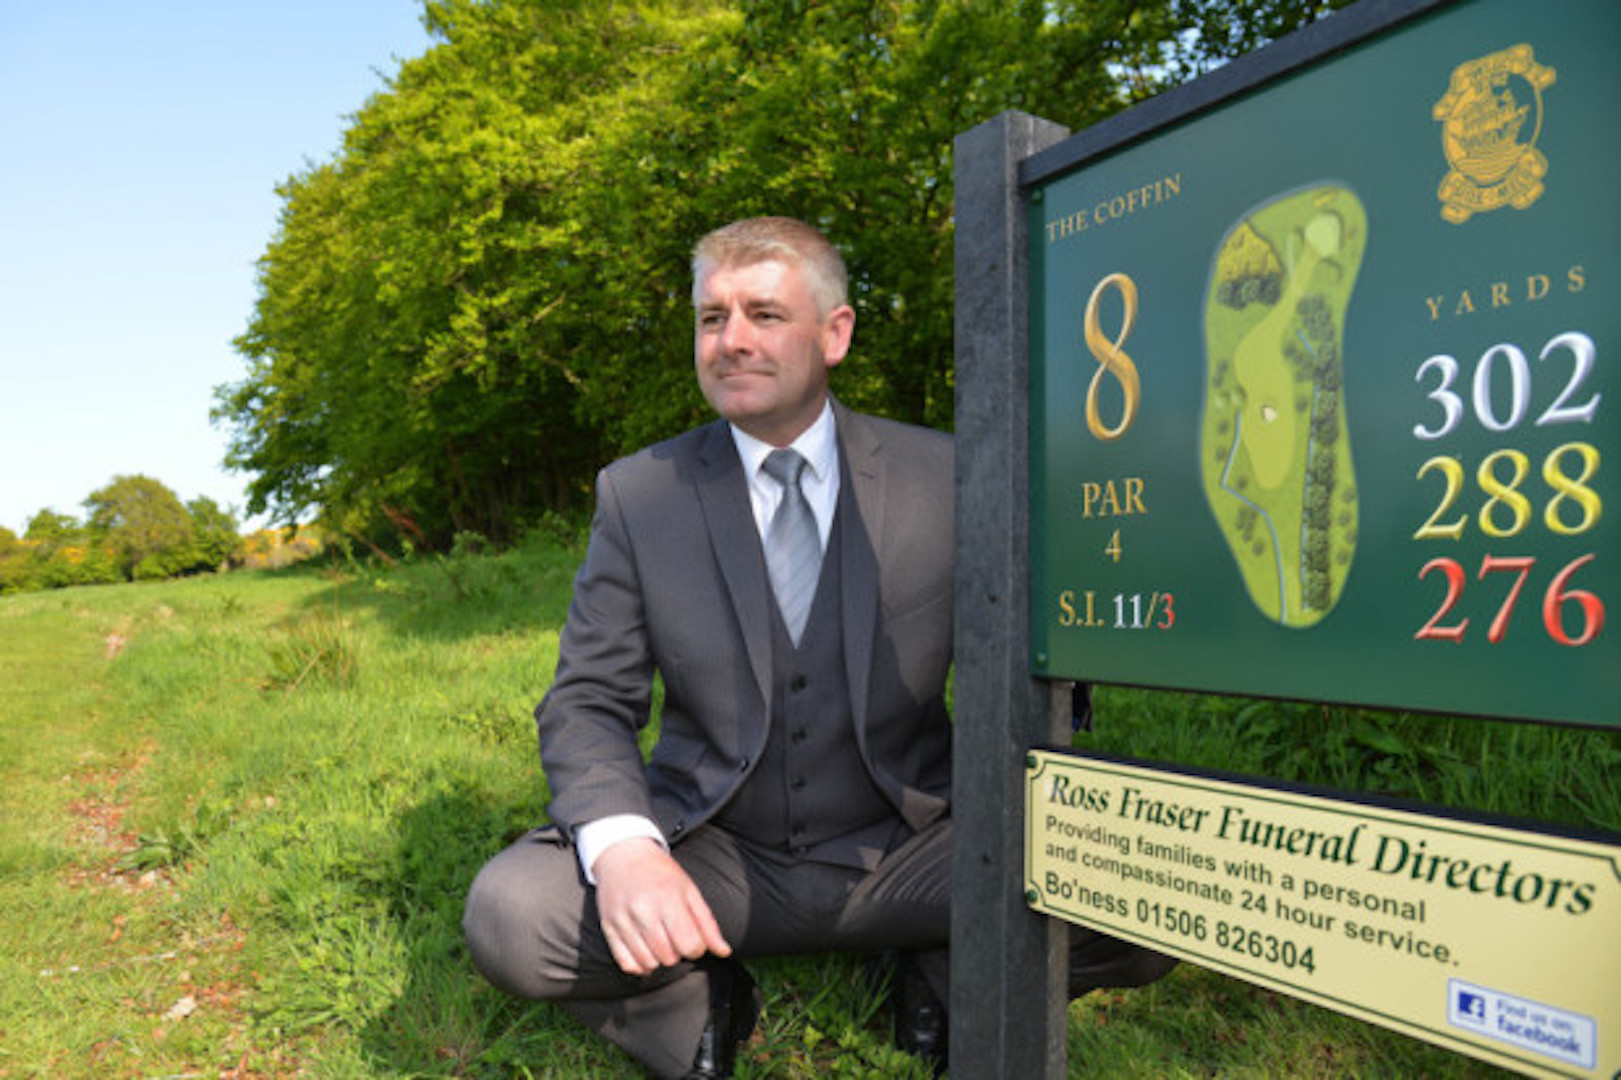 Funeral Director sponsors hole called 'The Coffin'